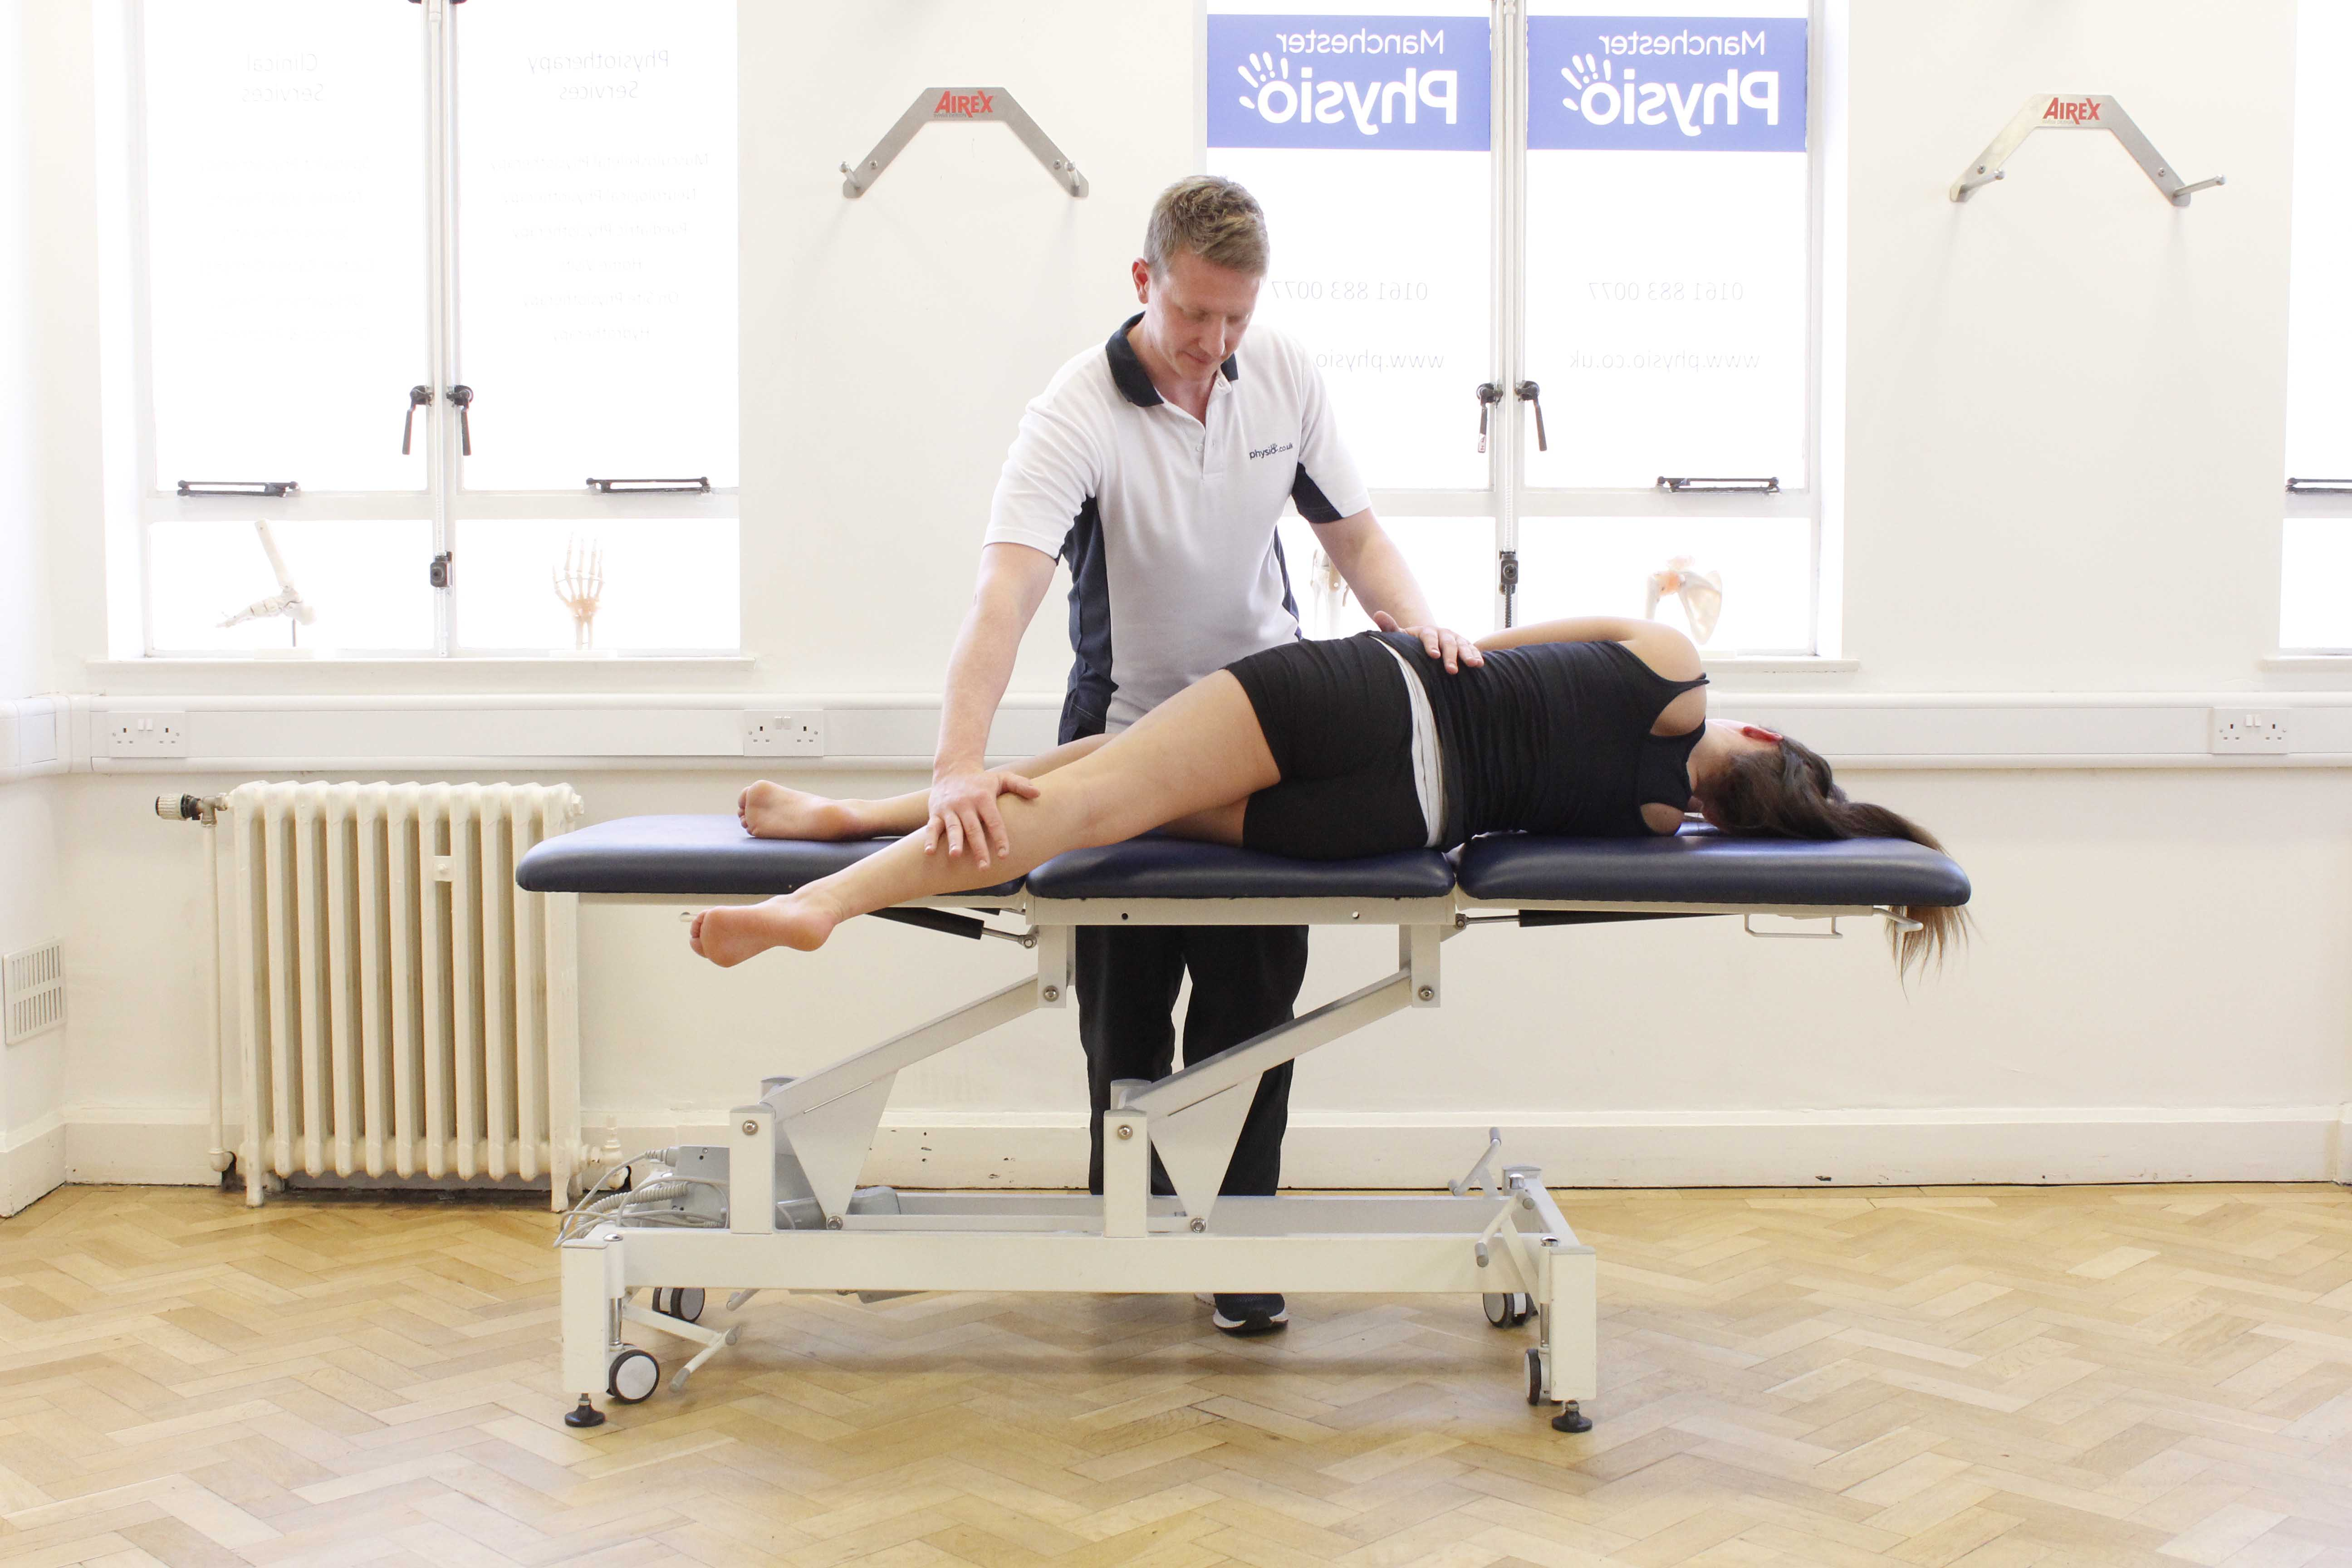 Active stretches and mobilisations of the groin and pelvic muscles with supervision from a MSK therapist